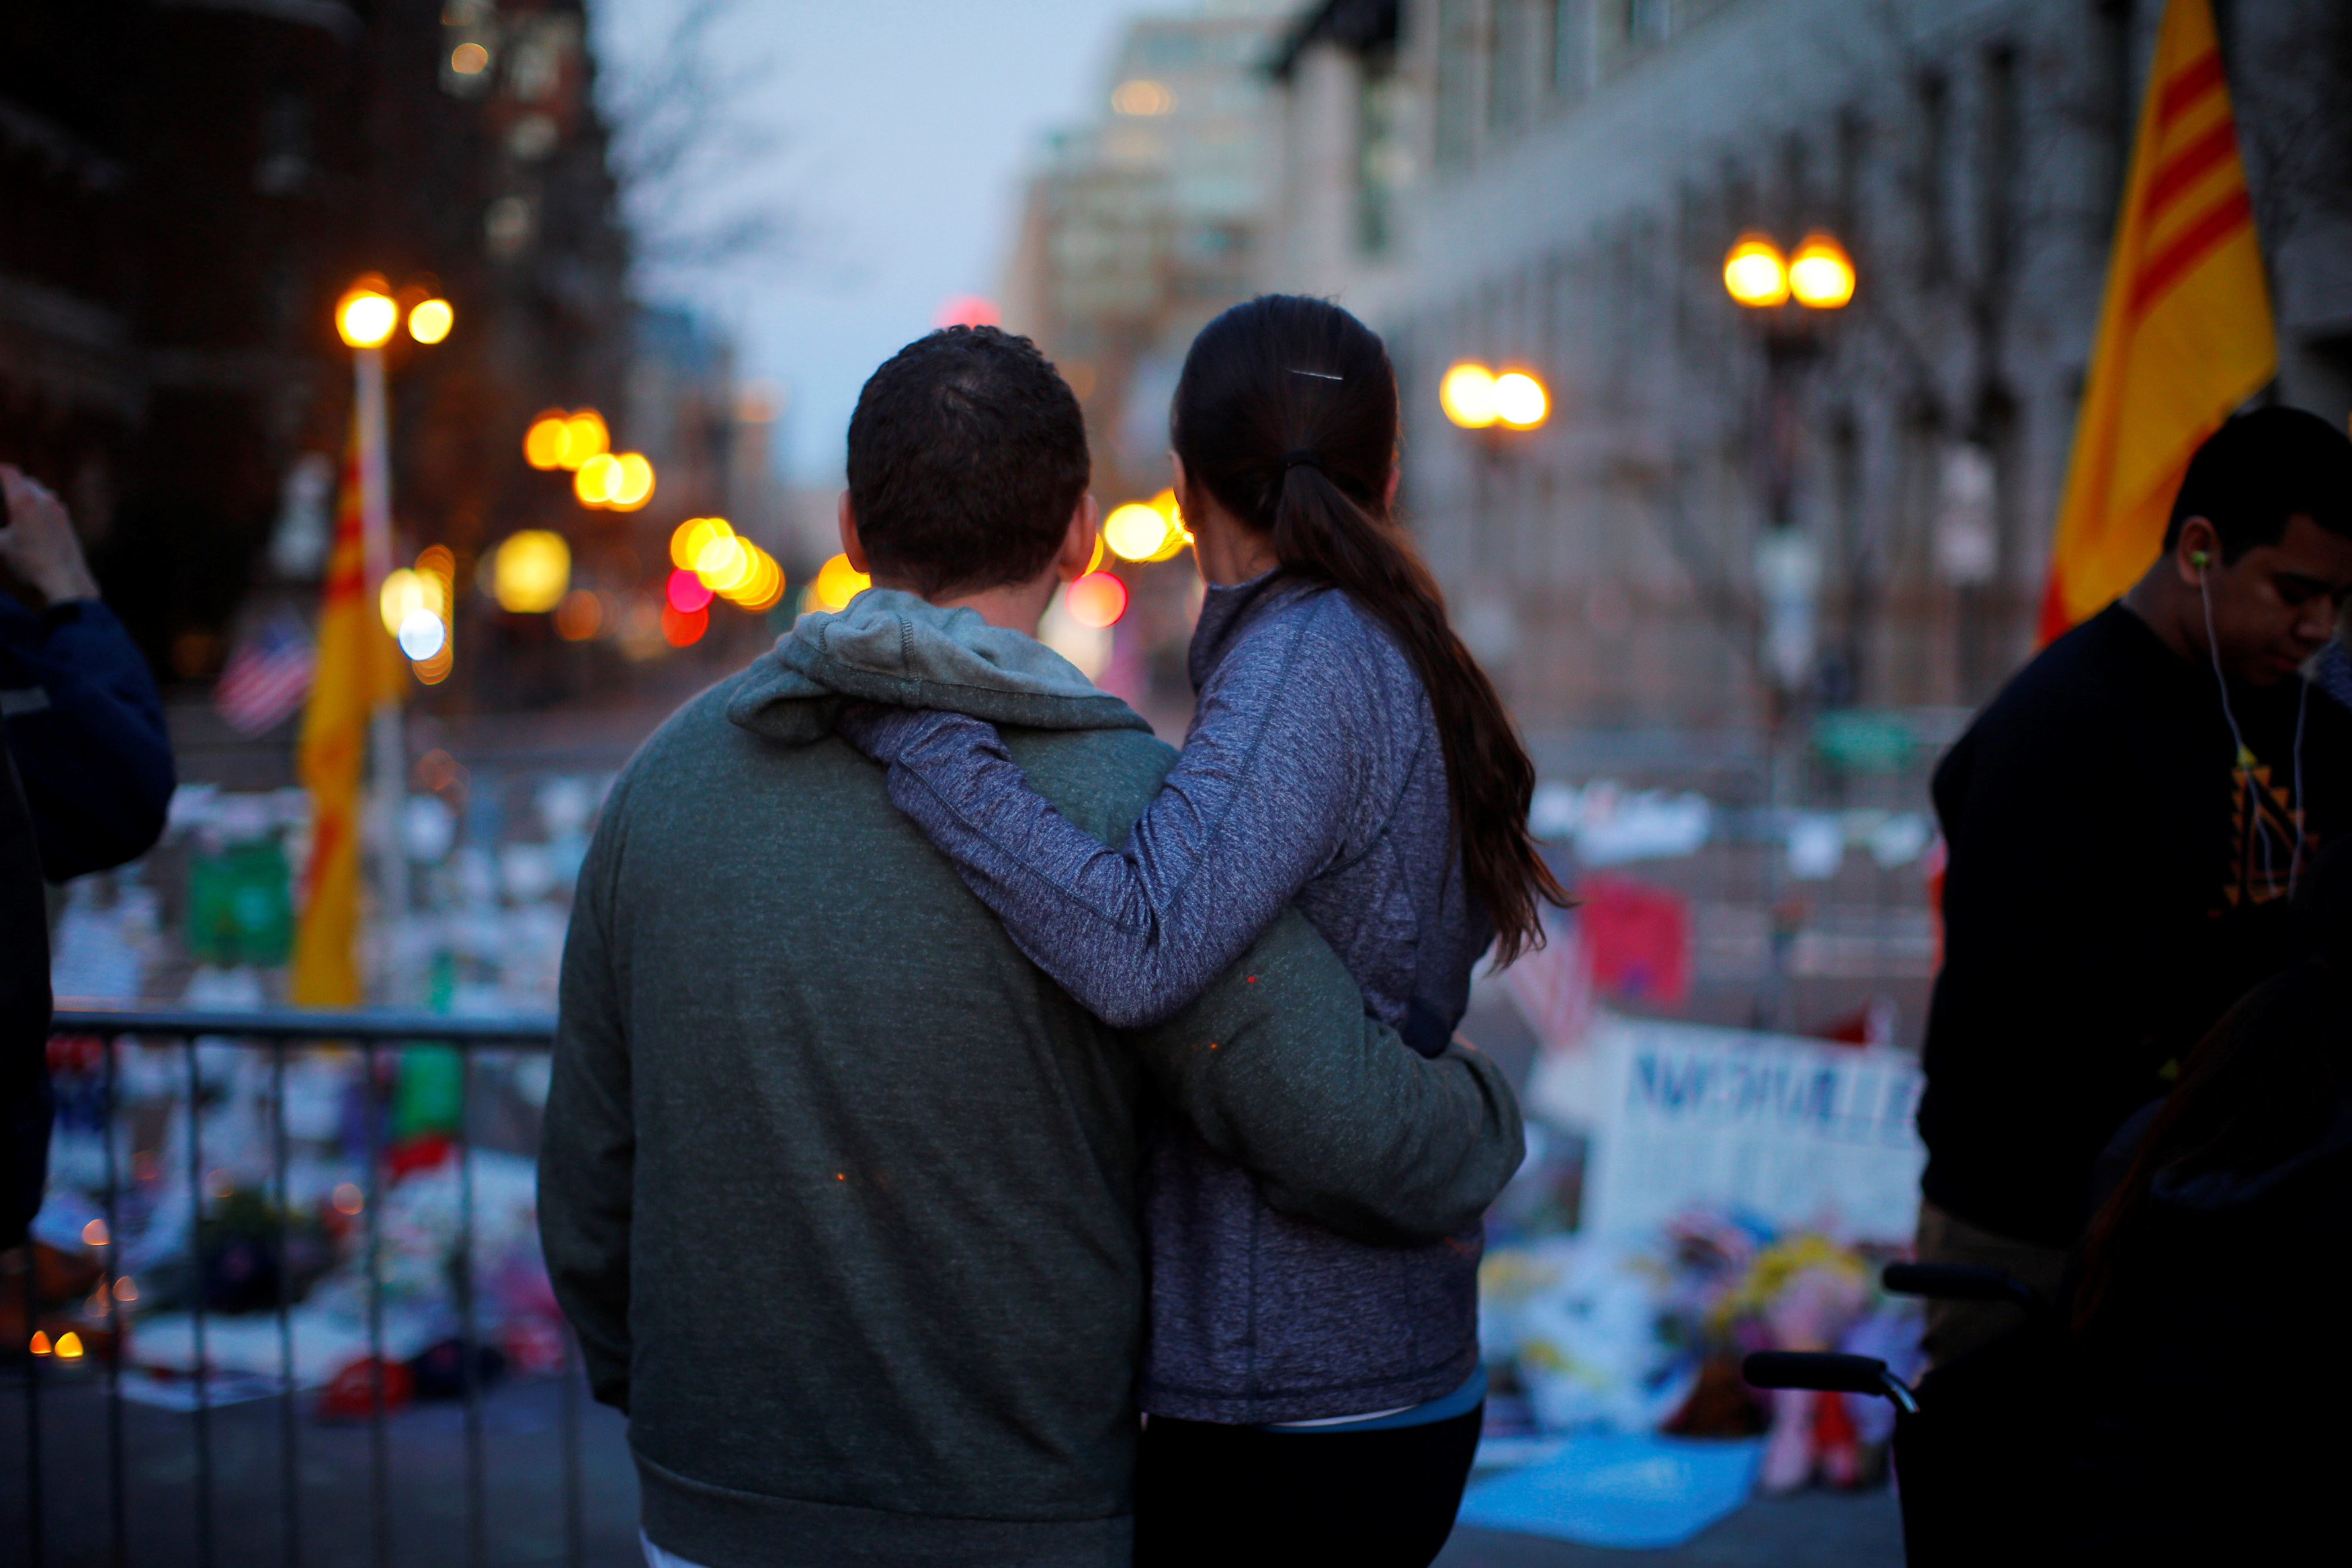 A couple embraces at a memorial on Boylston Street to the victims of the Boston Marathon bombings in Boston, Massachusetts April 21, 2013. REUTERS/Brian Snyder